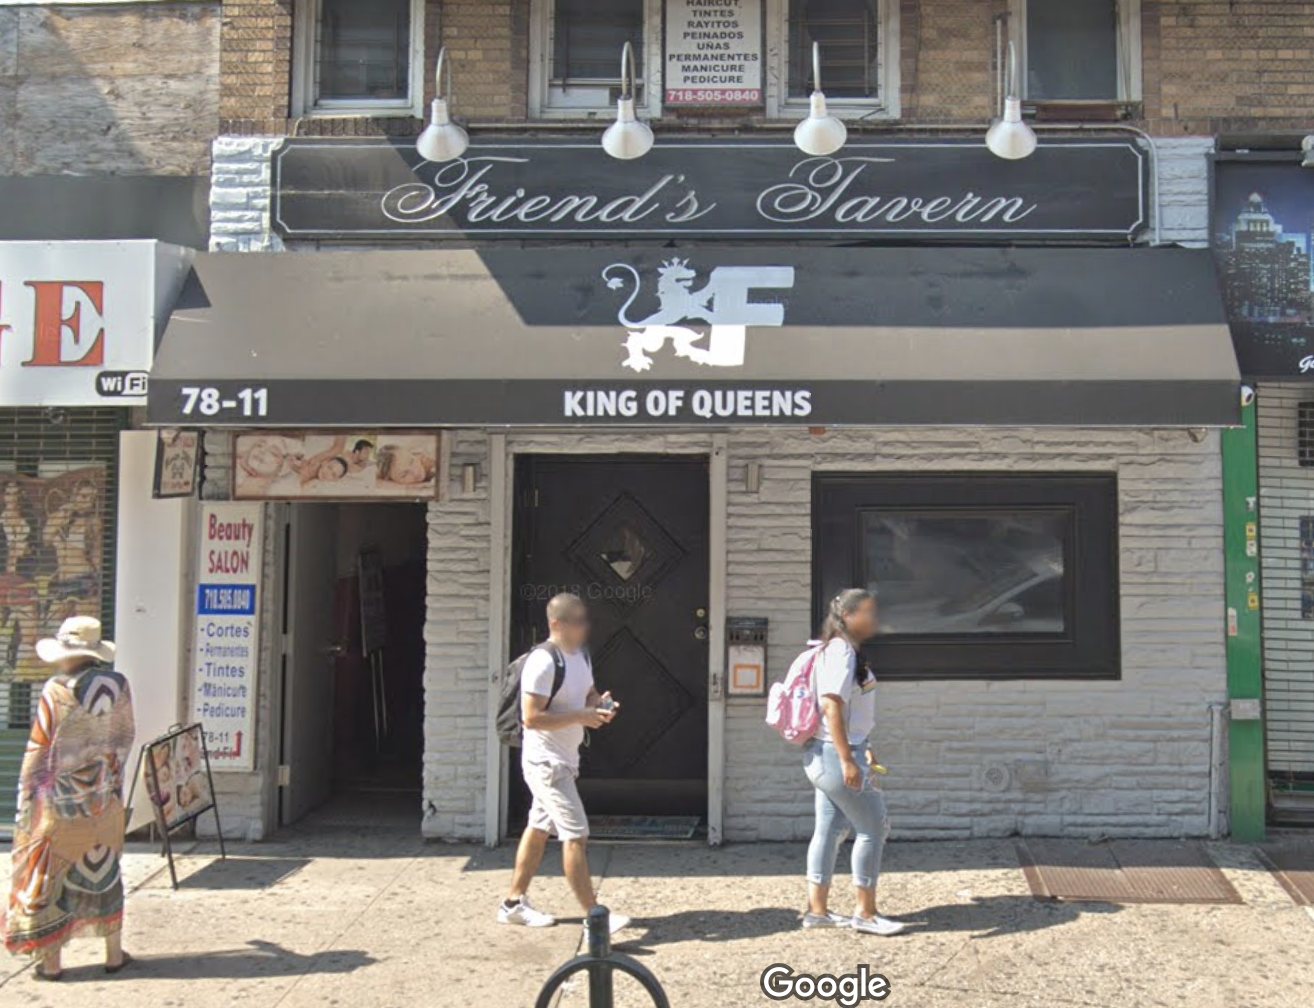 NYPD Officer Jose Linares-Bilbao was arrested for his alleged role in group attack outside Friend's Tavern, a gay bar in Corona. Photo via Google Maps